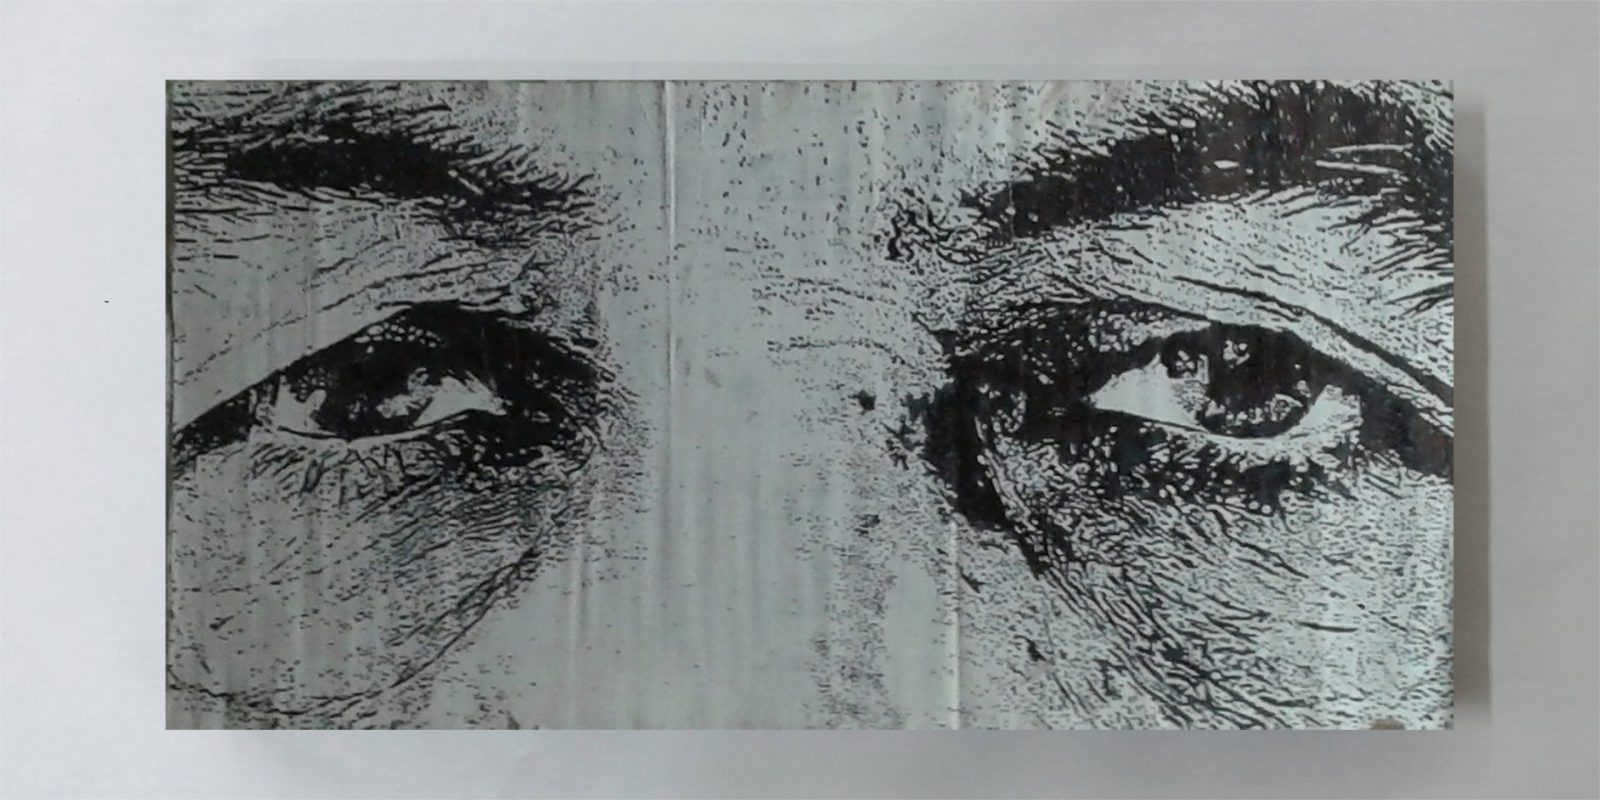 Portrait, Portraiture, Realism, Contemporary Art | Dimensions: 200 x 100 cm. | Technique: Mixed Media | Over Painted Paper [Verso]. | Supporting Material: Paper. | Materials: Acrylic Paint | Chinese Ink | Spray Paint | Marker | Tape | Paper. | Recto: As seen in the photo. | Verso: Black.